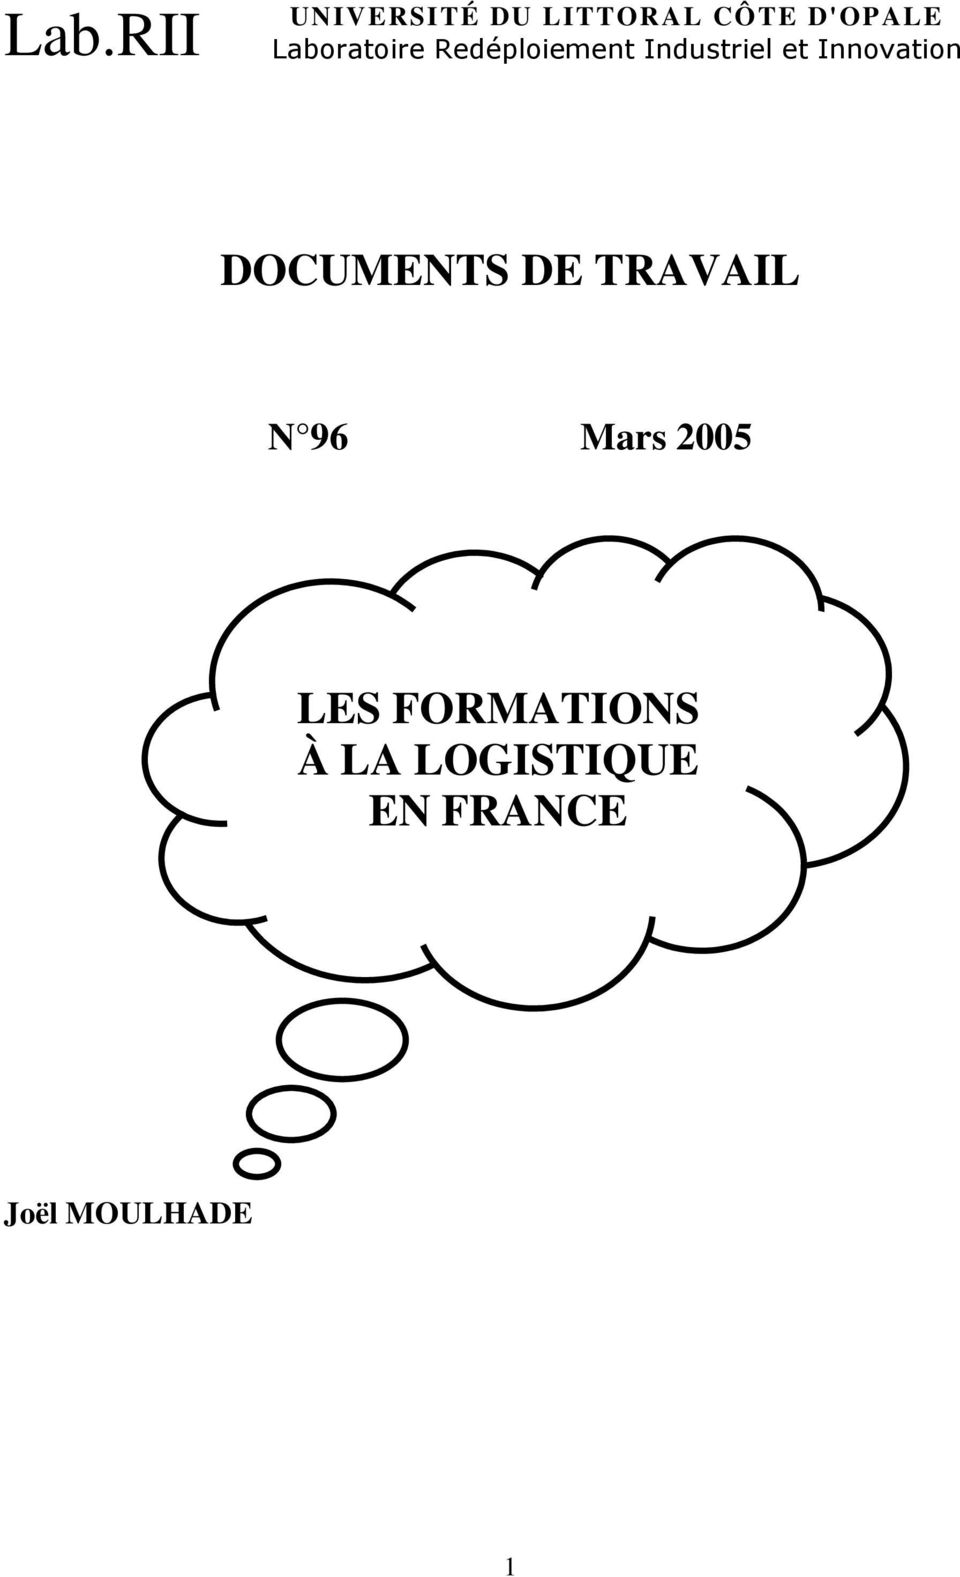 Innovation DOCUMENTS DE TRAVAIL N 96 Mars 2005